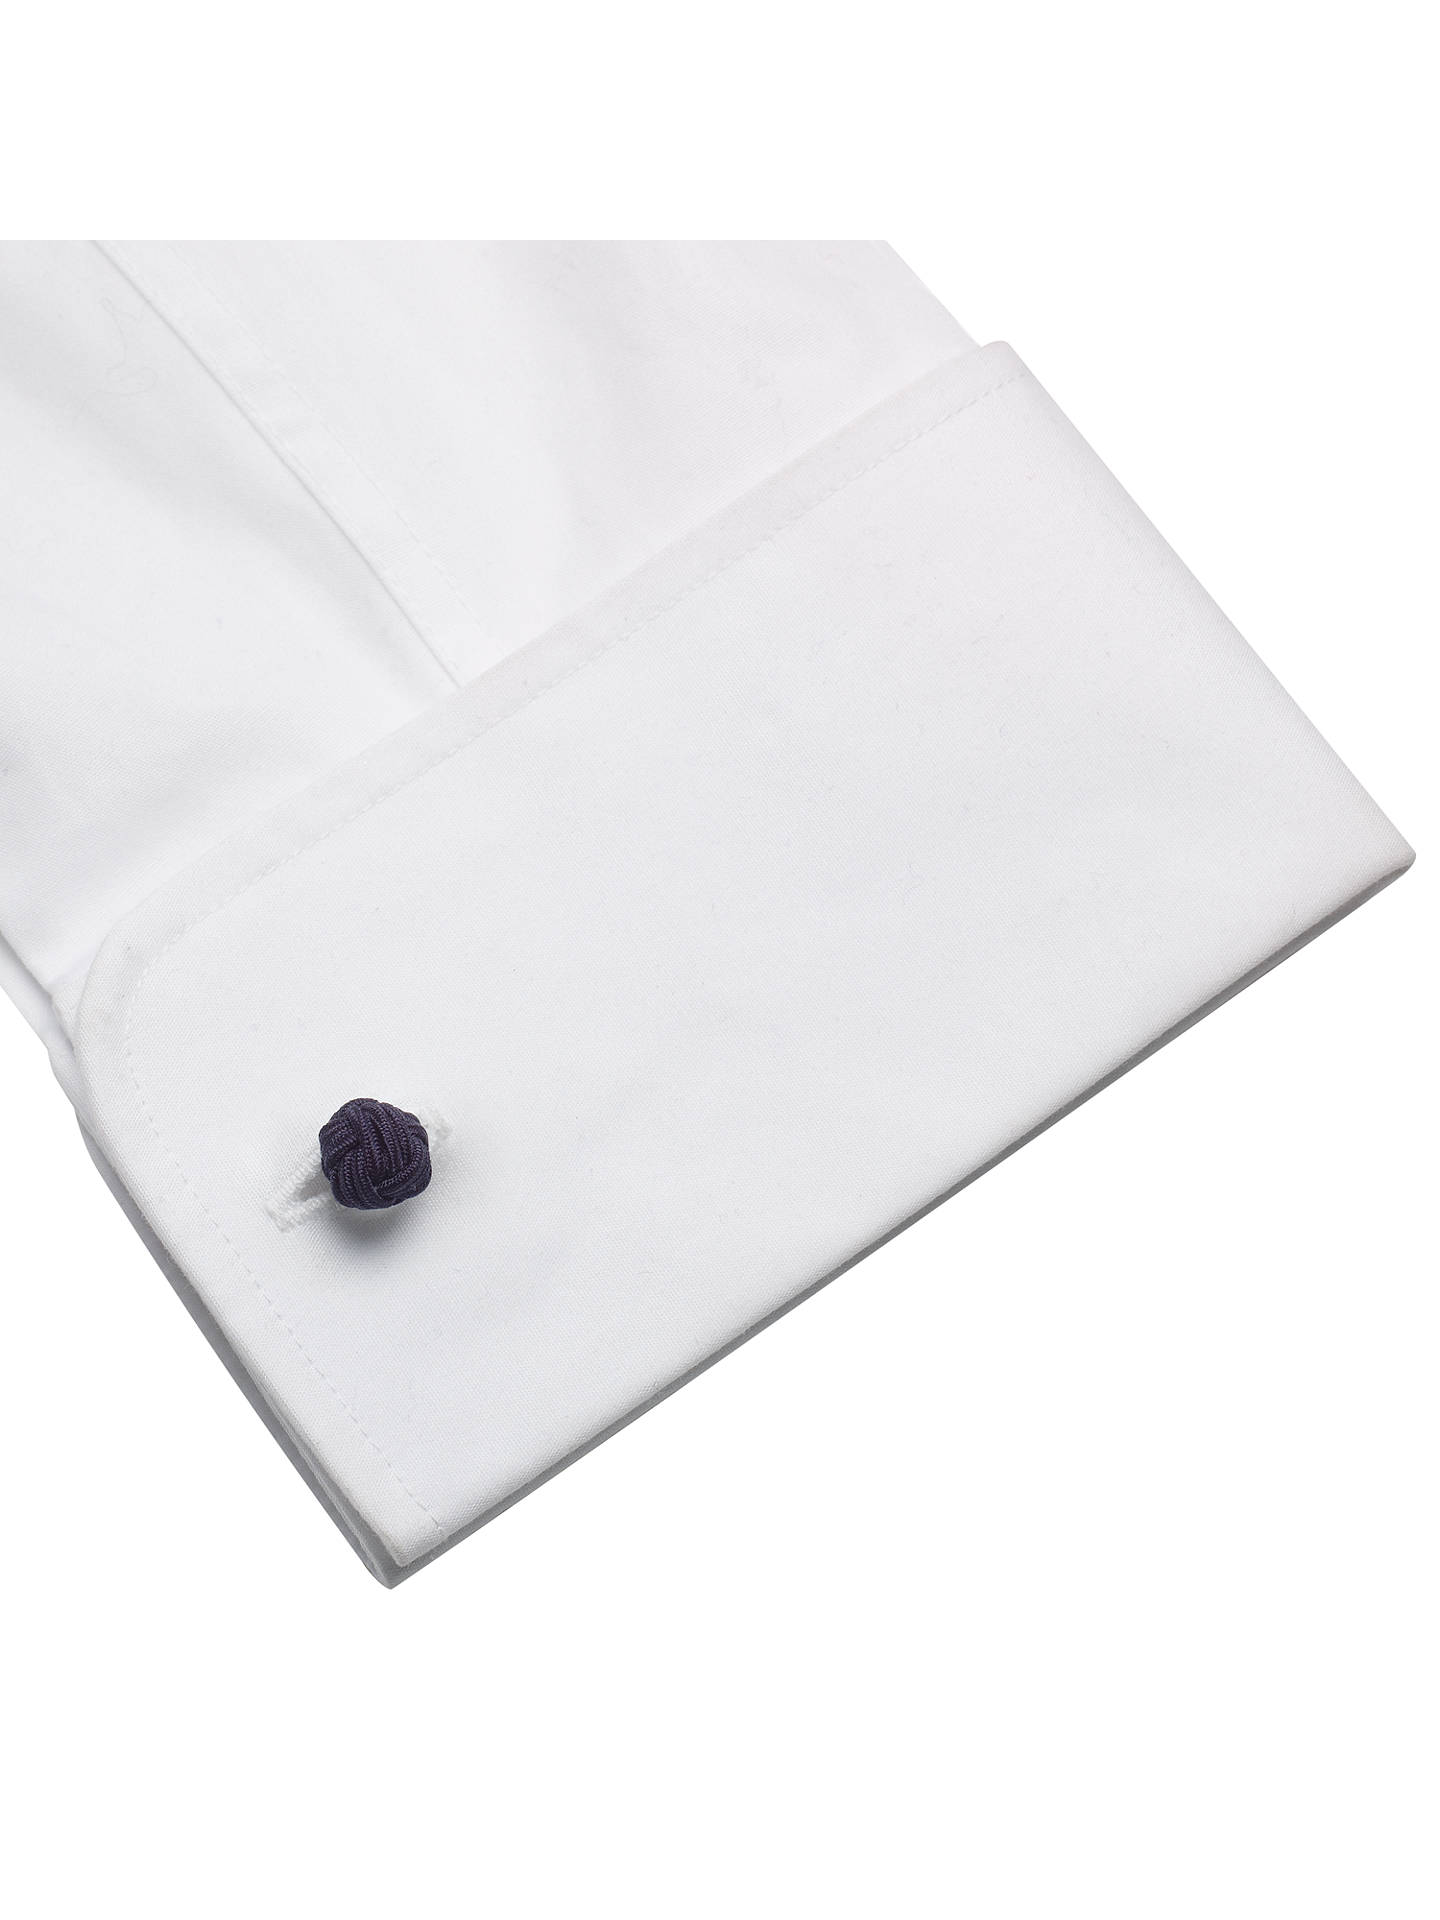 BuyJohn Lewis & Partners Fabric Knot Cufflinks, 3 Pairs, Black/Grey Online at johnlewis.com